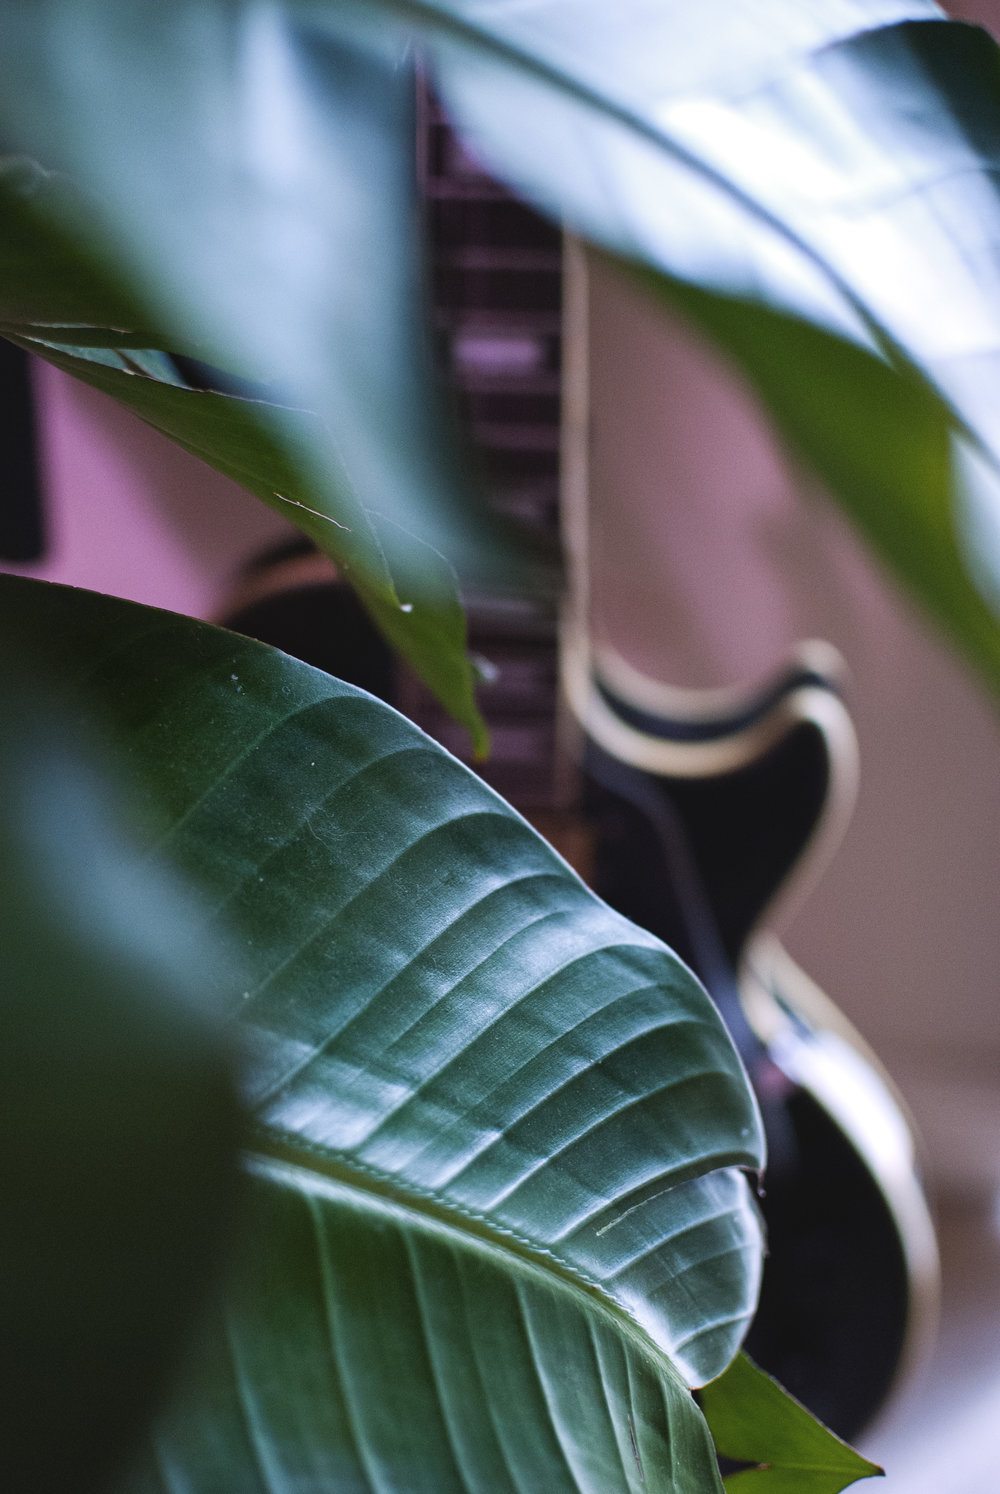 The largest leaves inside our apartment - of a giant bird of paradise.